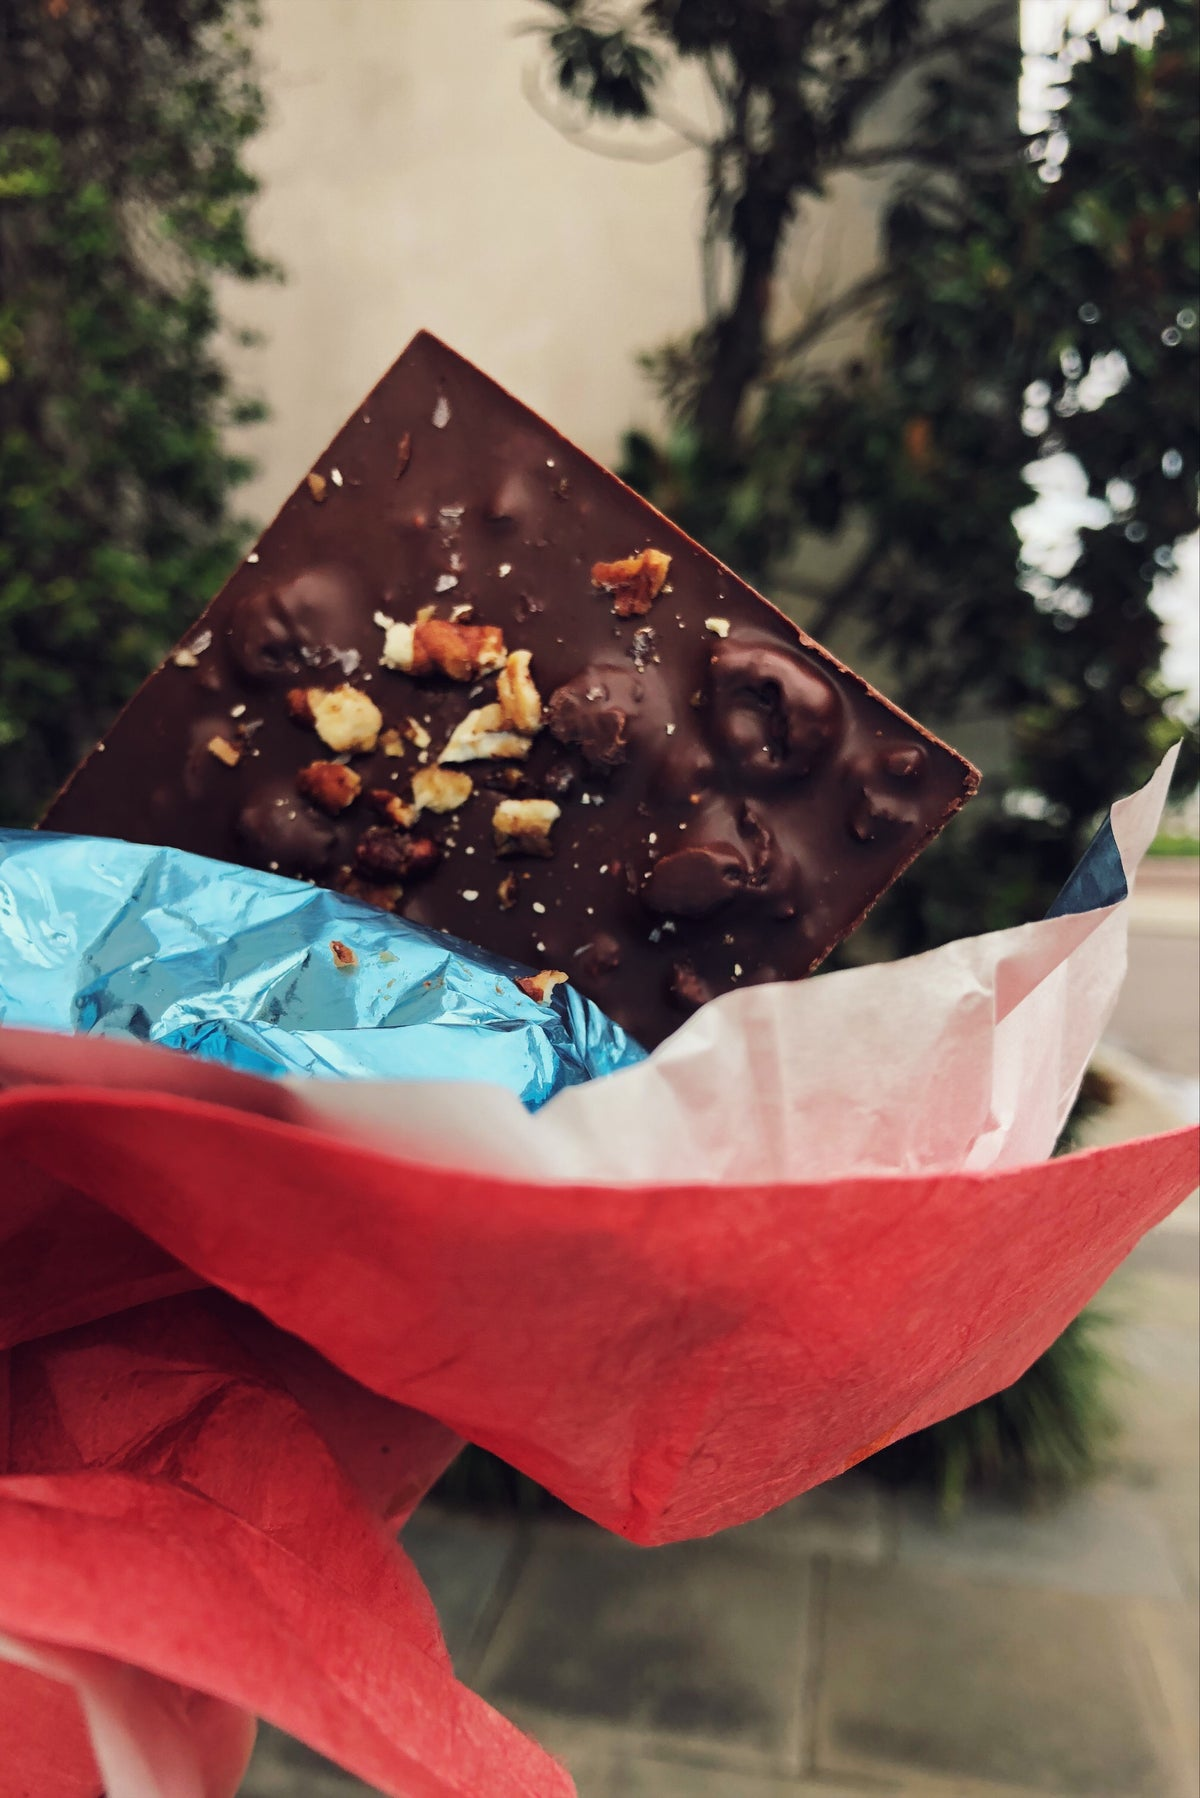 Southern Bar with delicious honey pecans and blackberries folded into a dark peach chocolate with notes of bourbon.